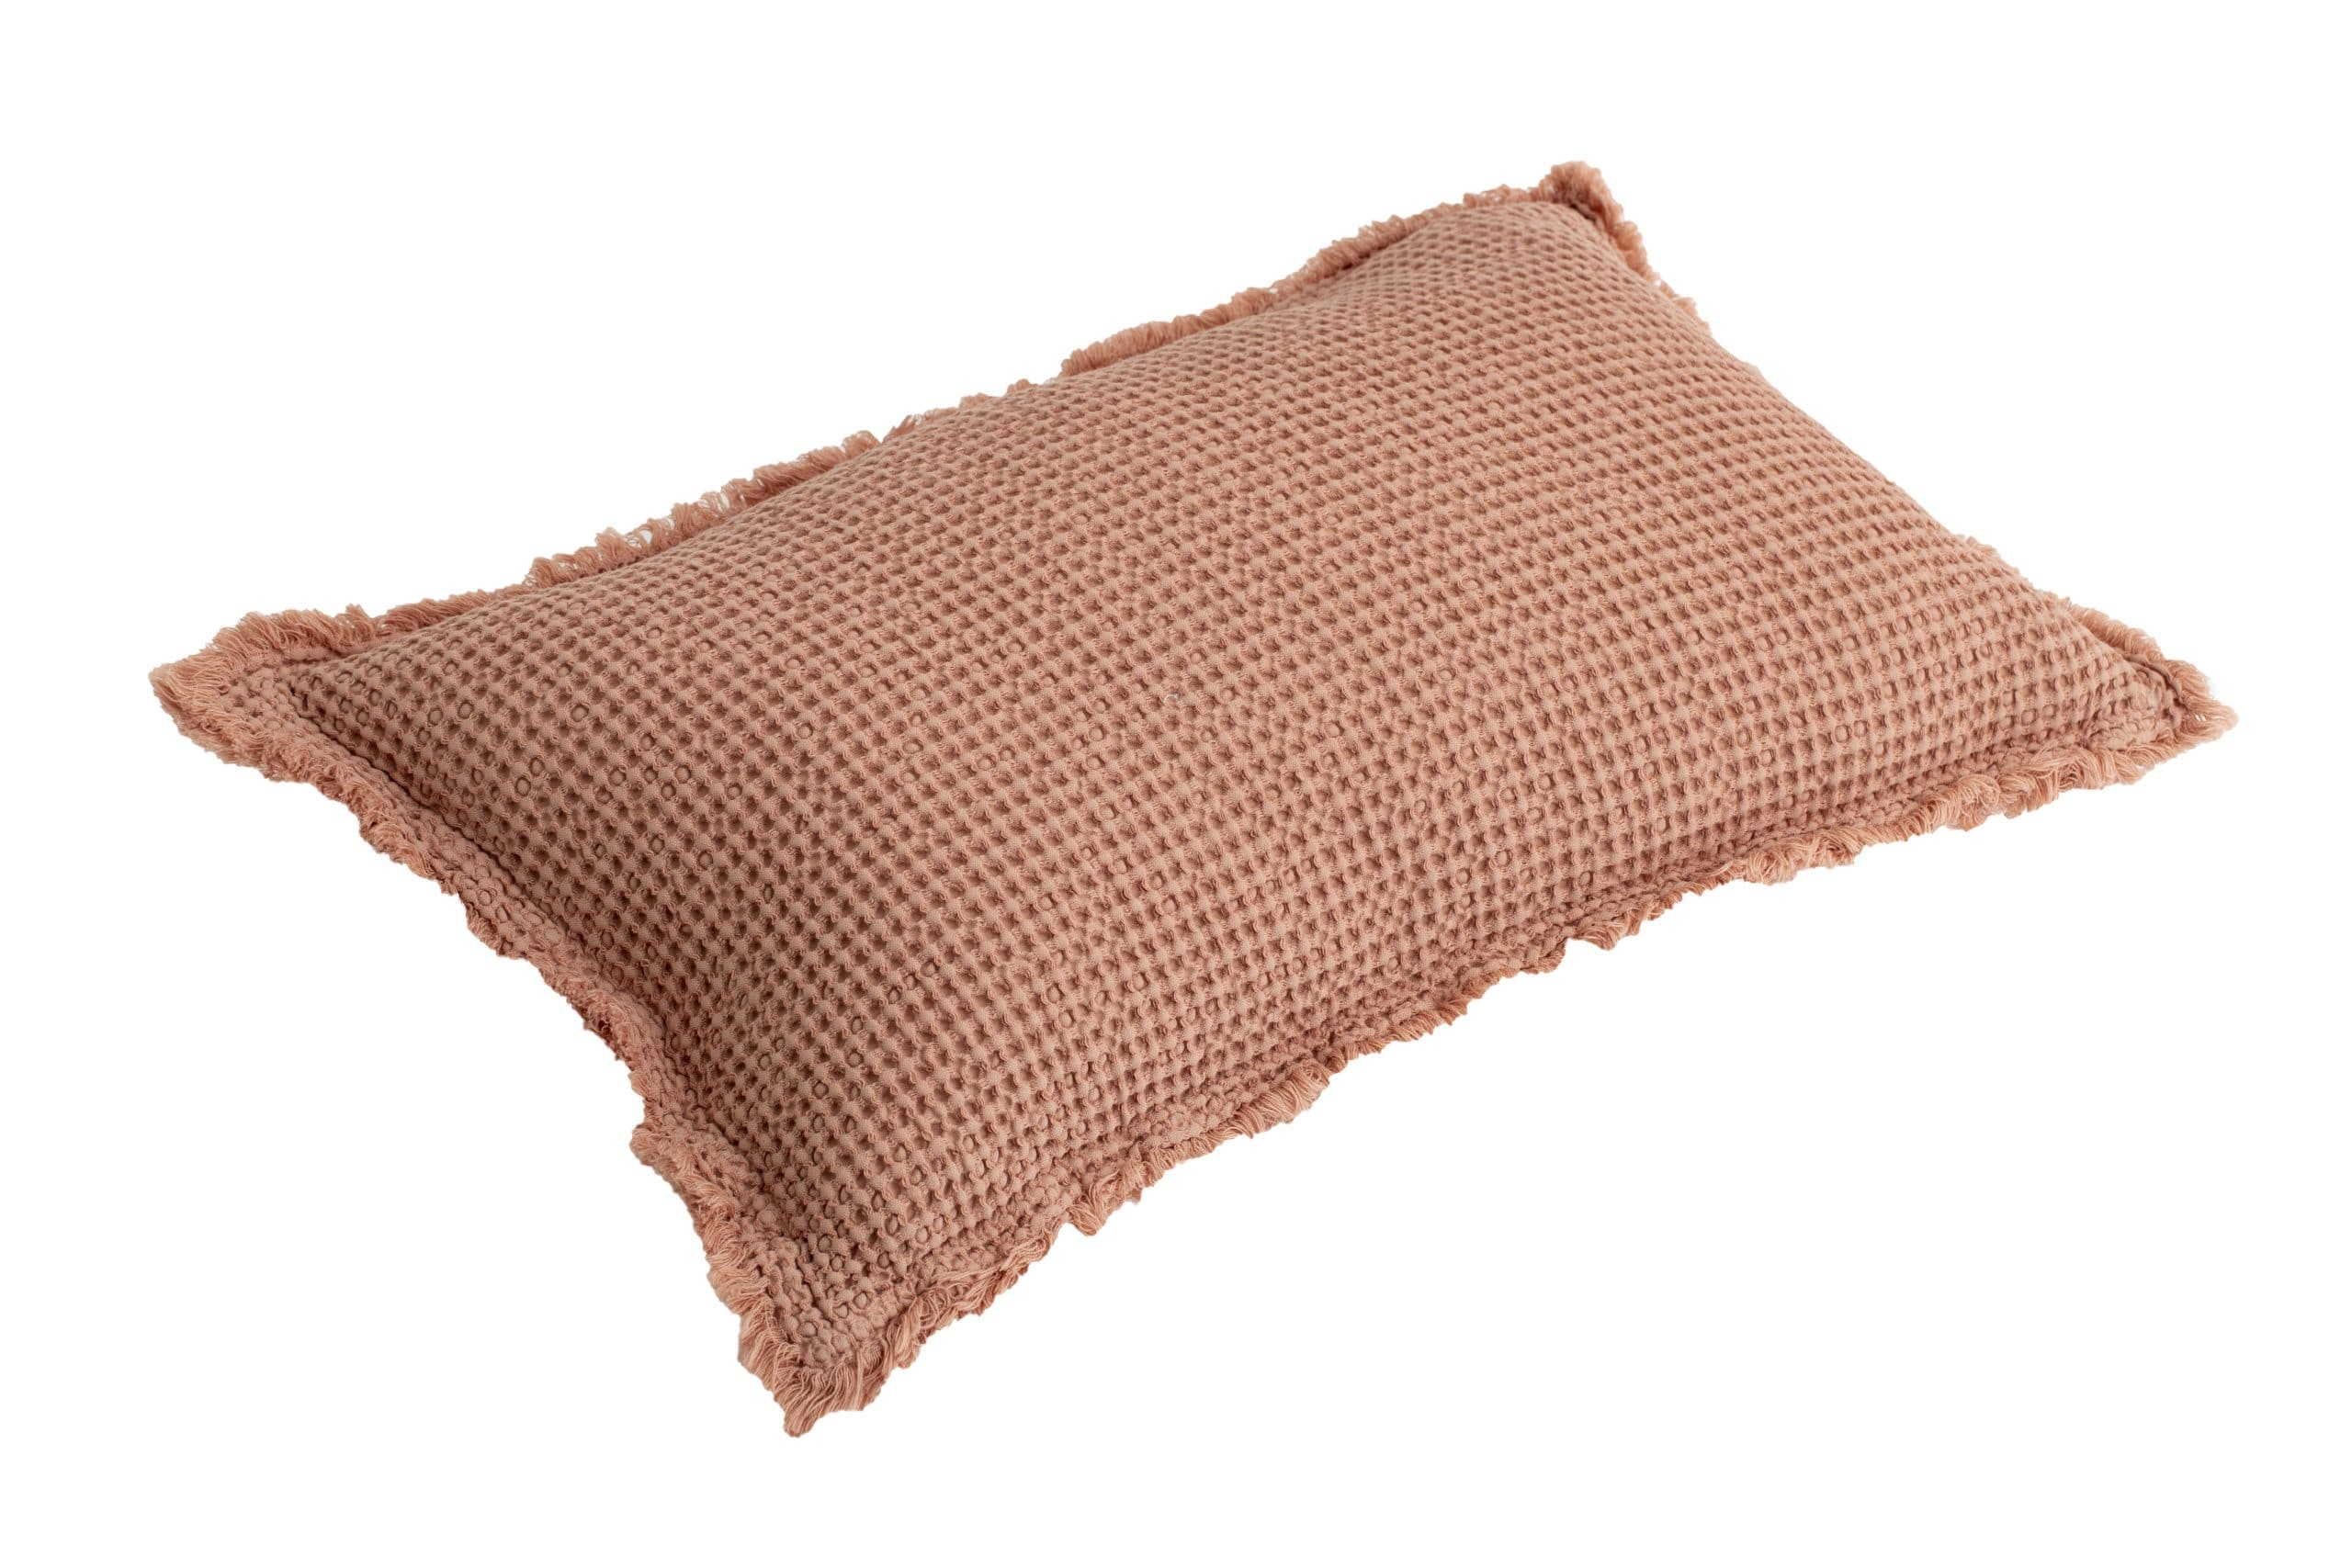 Deco Cushion Favo Coral 40x60 1 Scaled